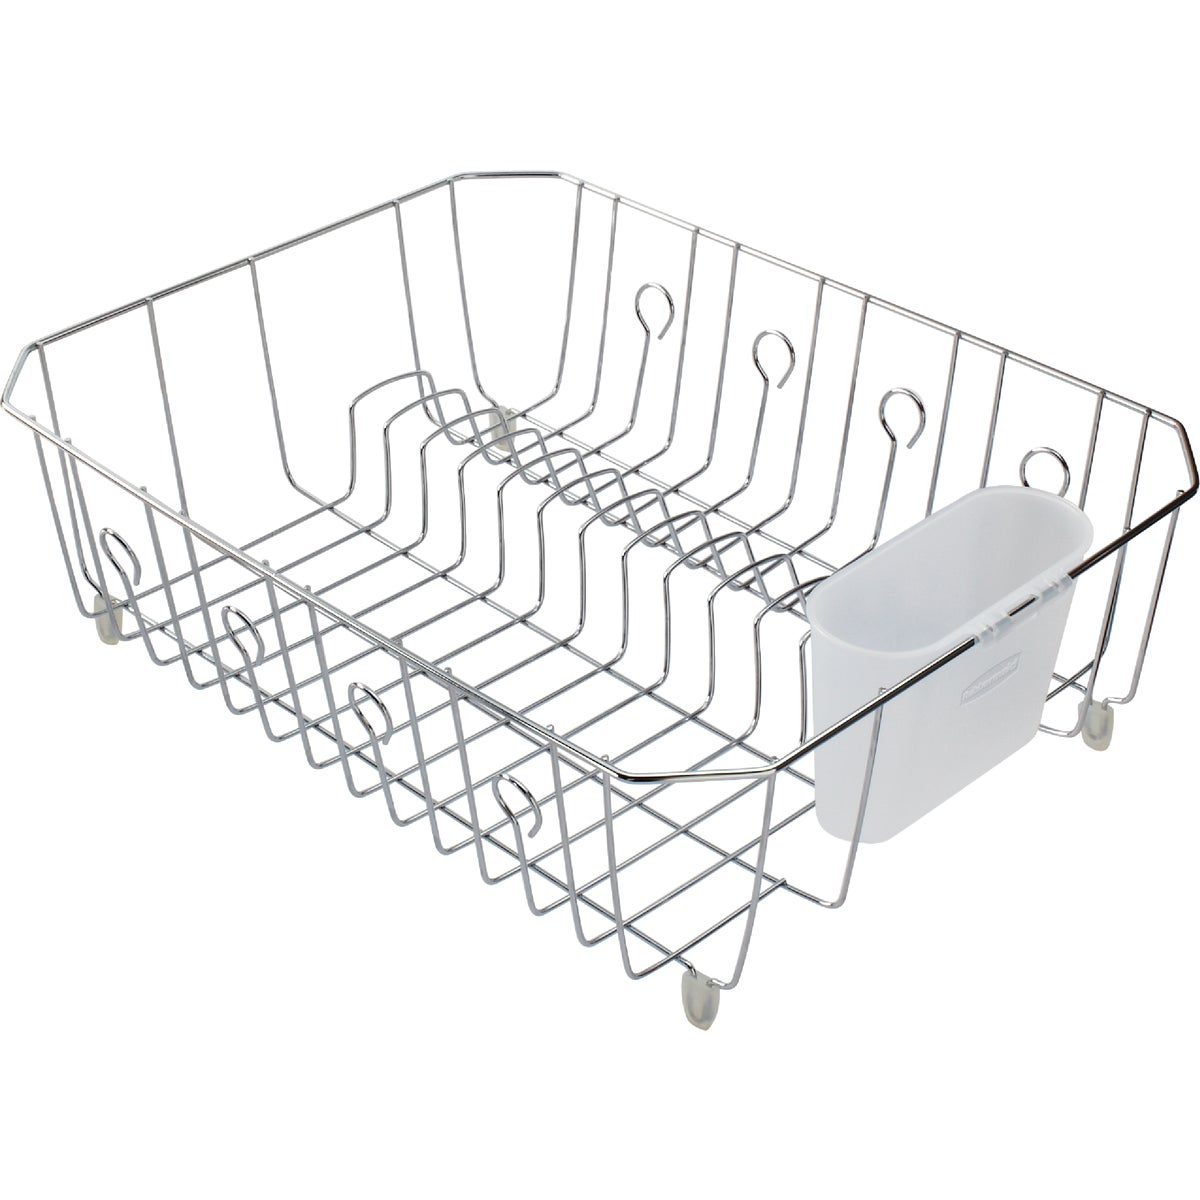 CHROME DISH DRAINER - 6032-AM-CHROM by Rubbermaid Home